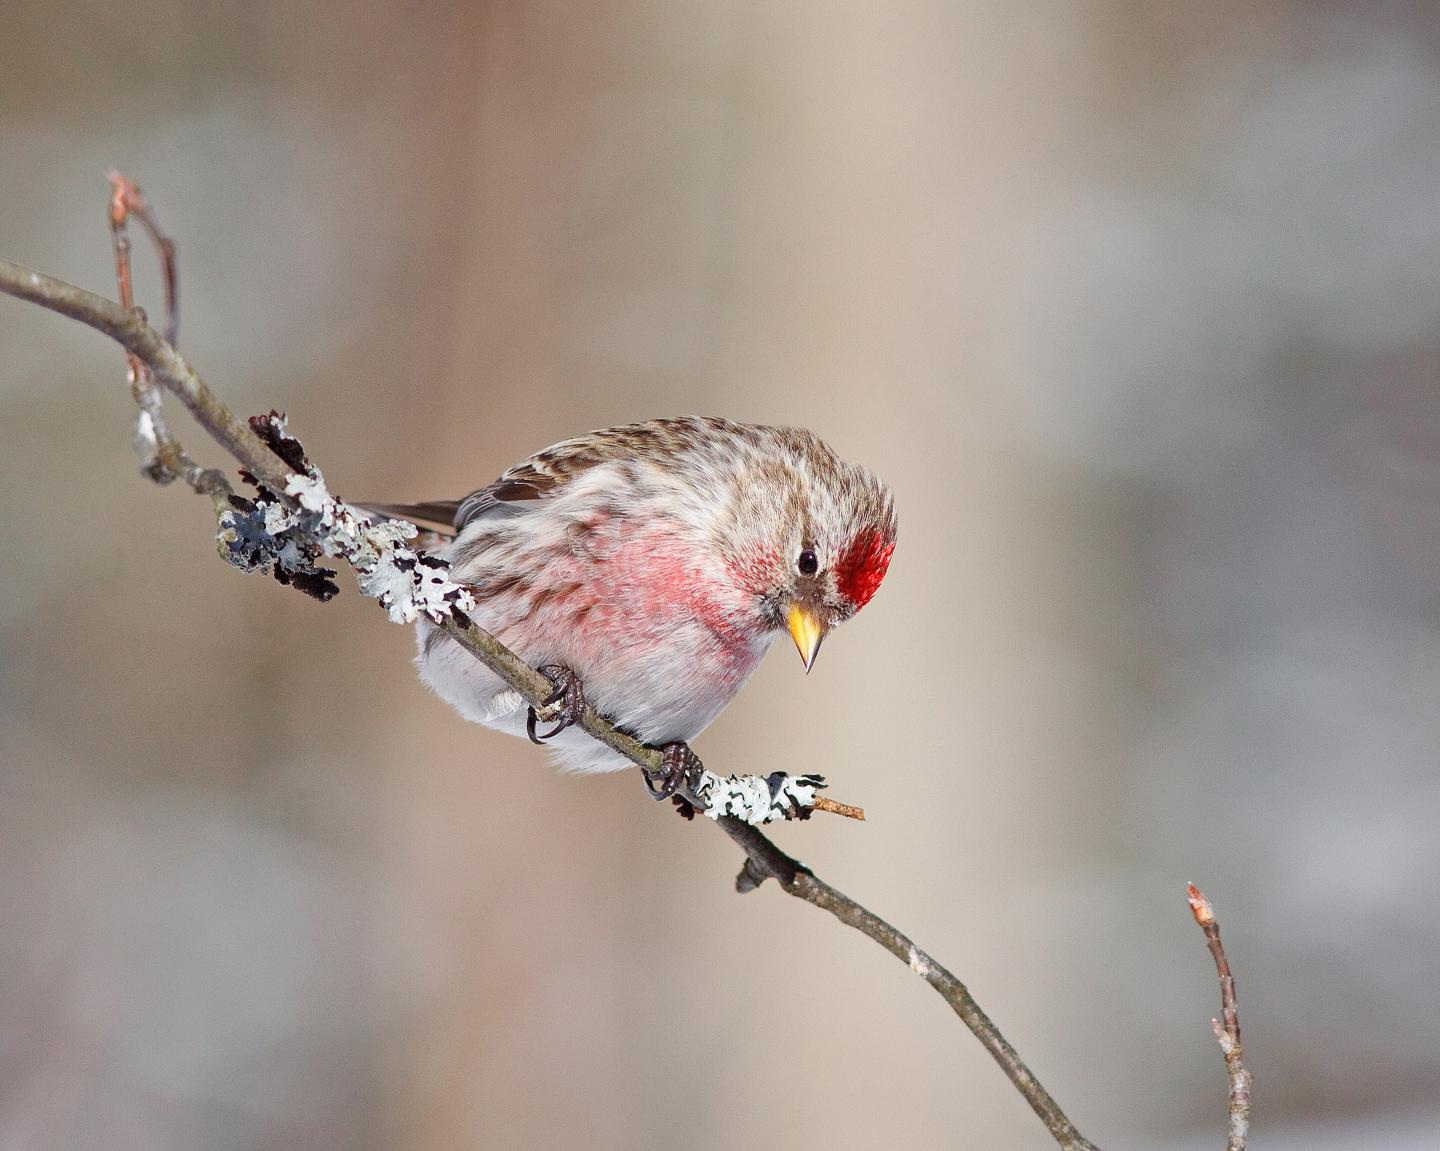 Migratory birds like this Common Redpoll consume both plants and seeds.